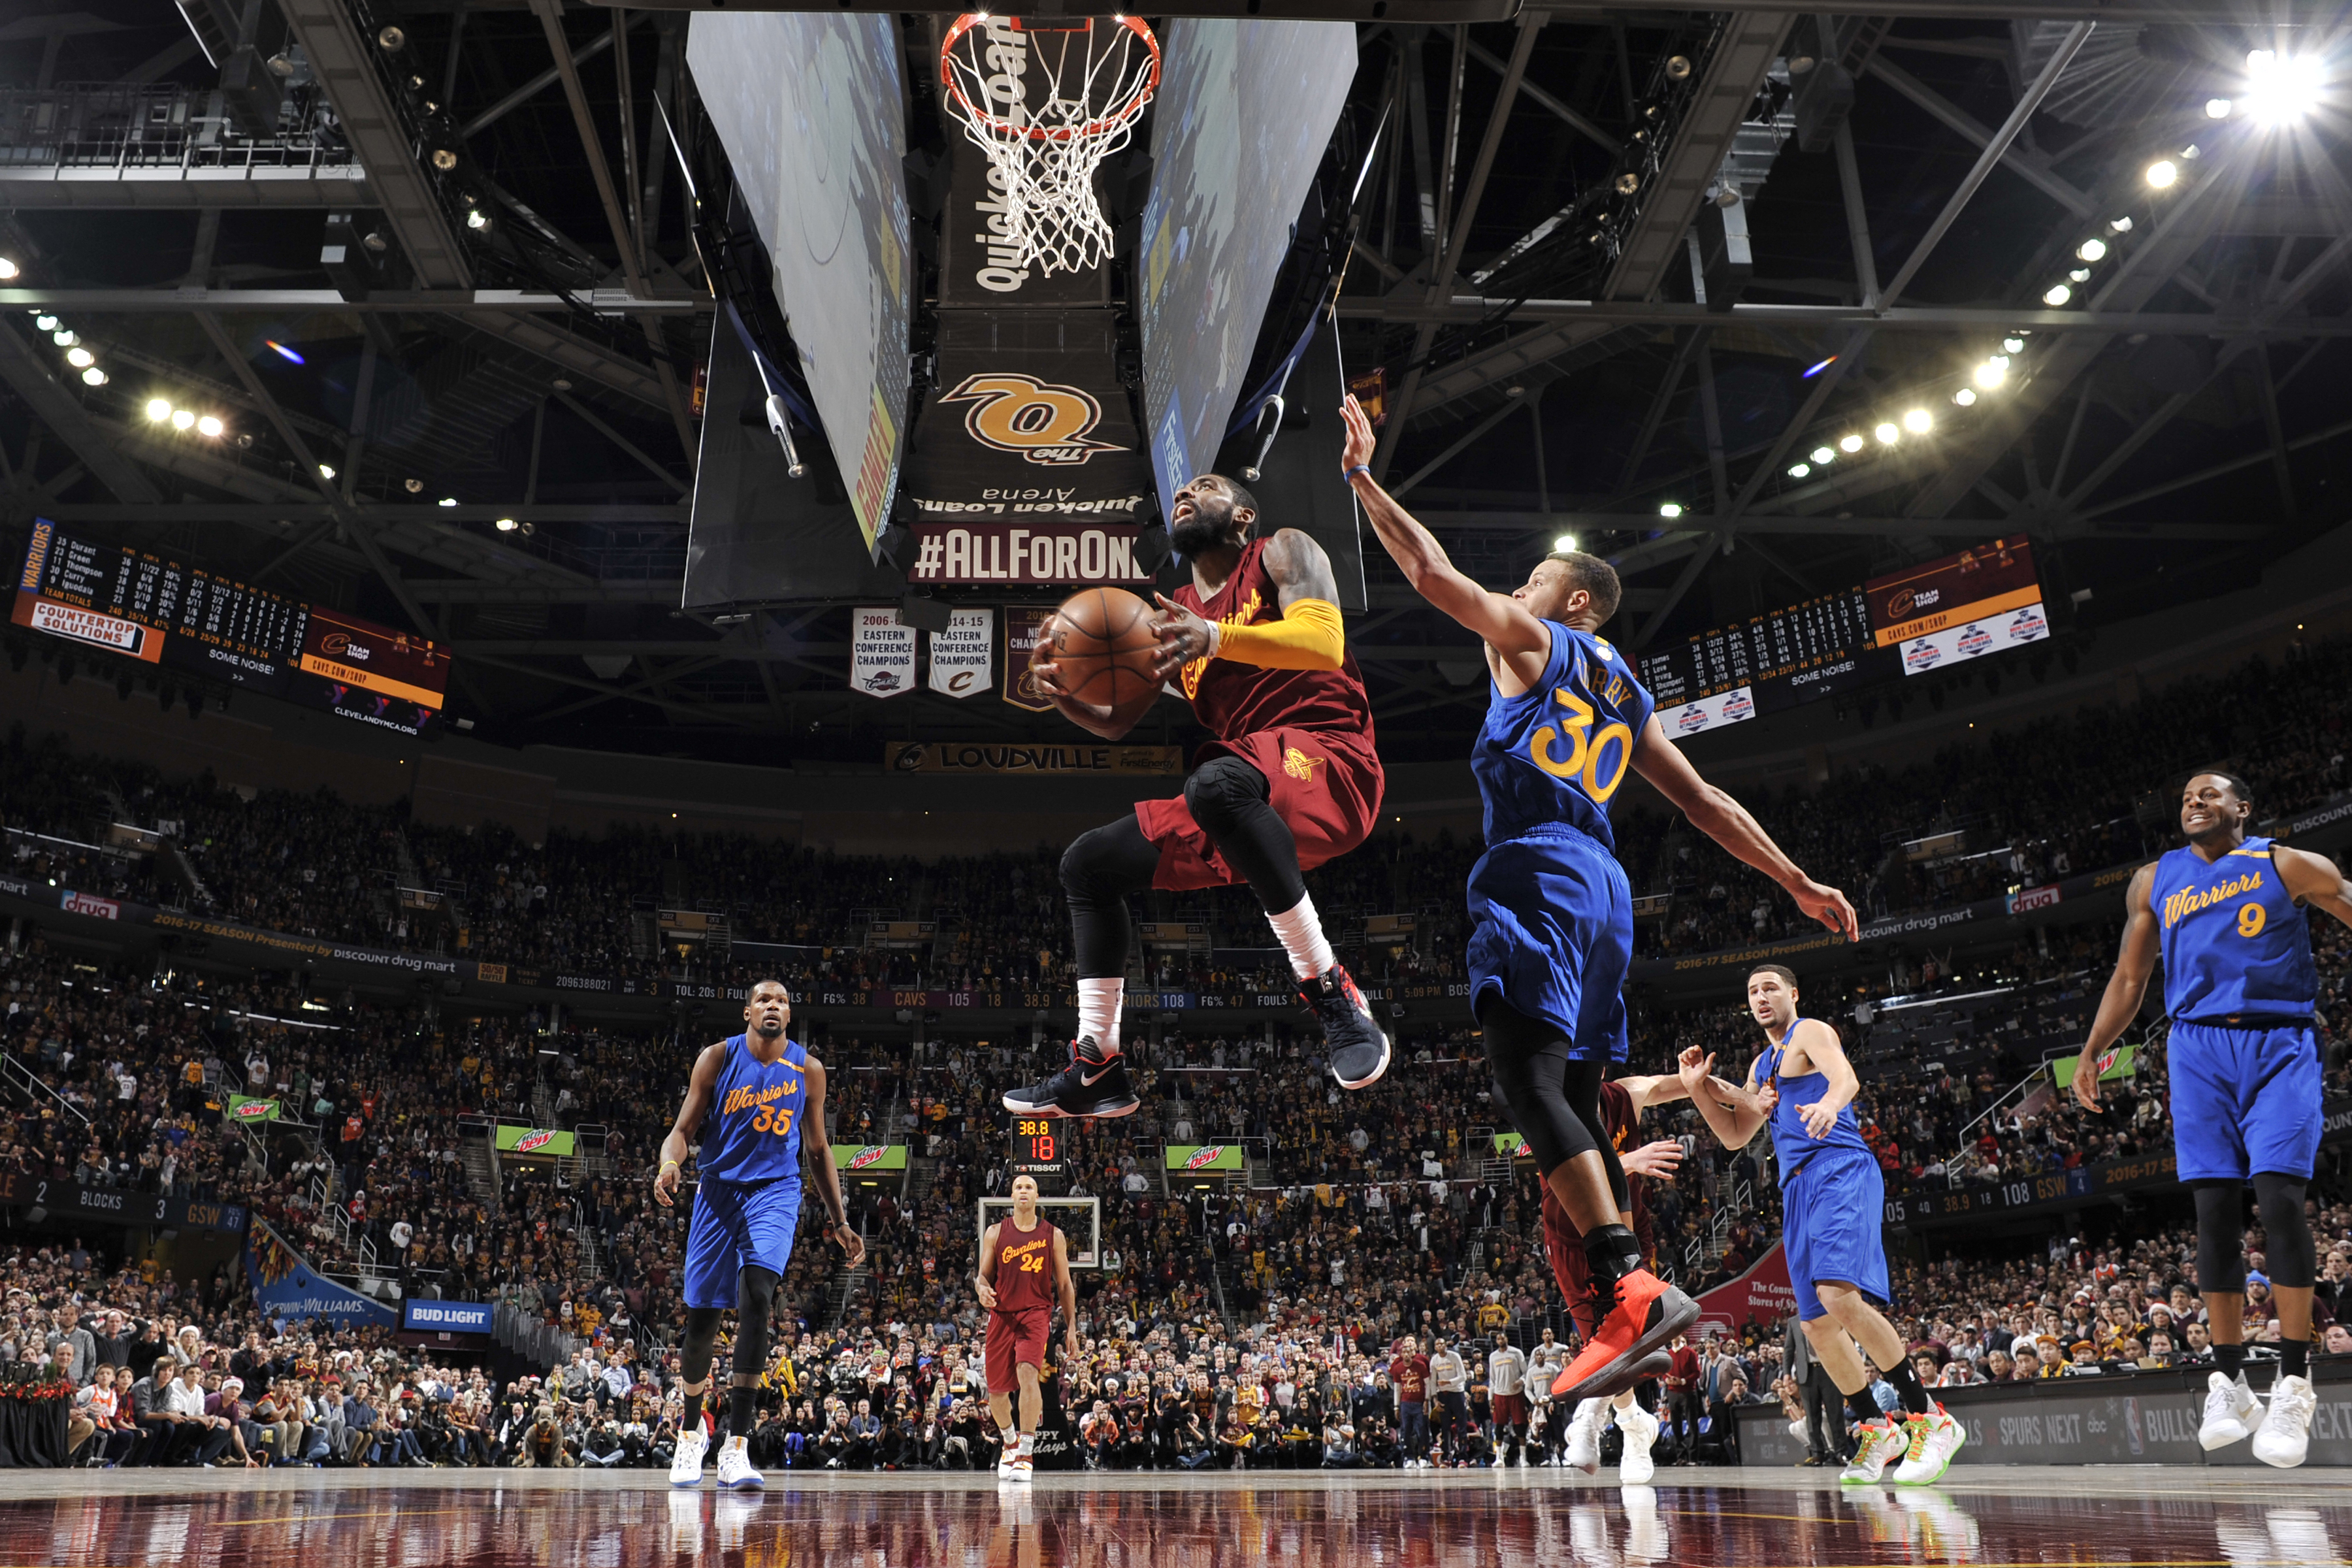 Kyrie Irving #2 of the Cleveland Cavaliers drives to the basket against the Golden State Warriors on December 25, 2016 at Quicken Loans Arena in Cleveland, Ohio.